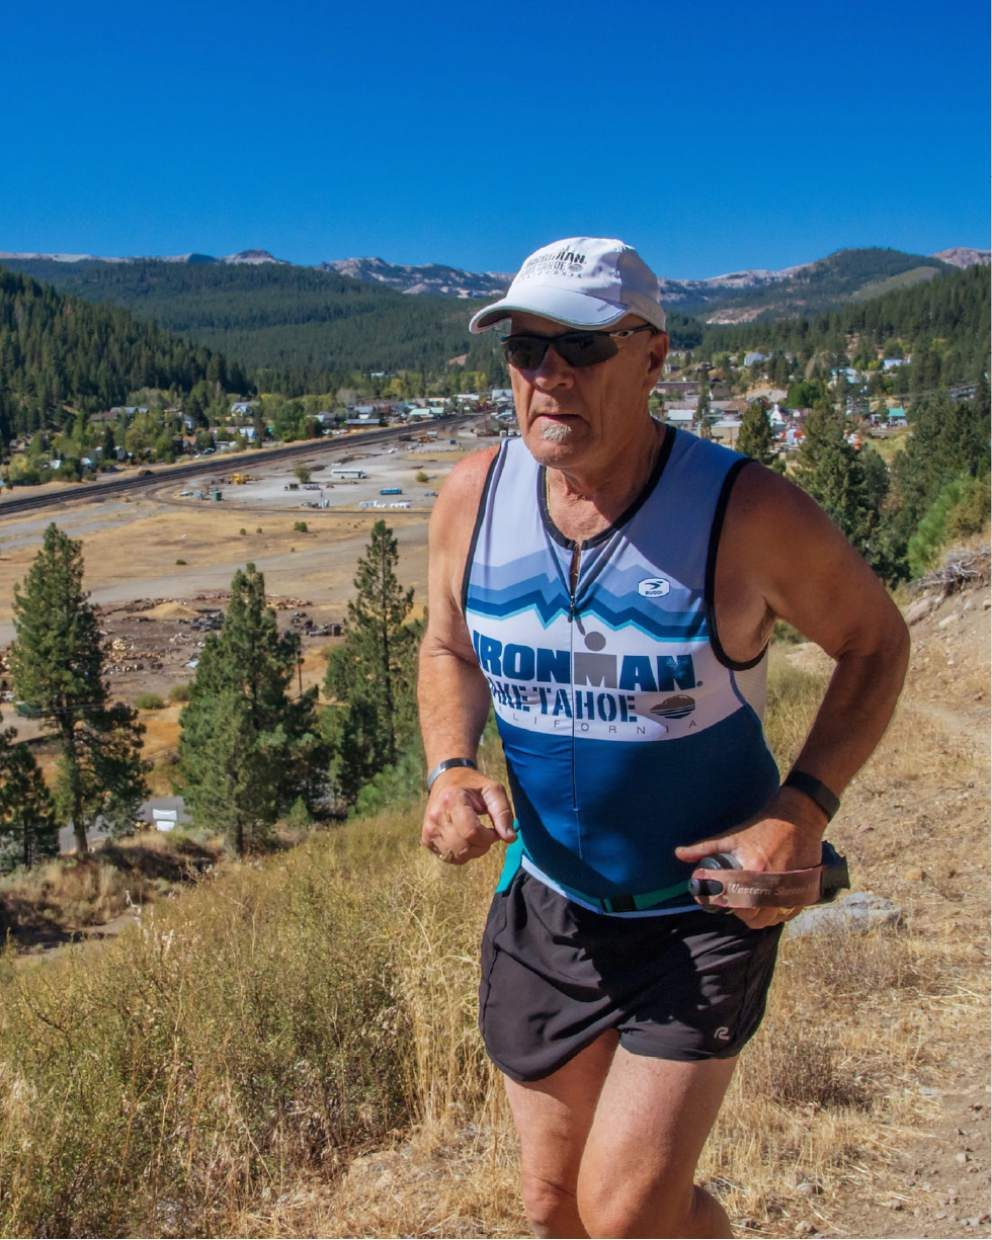 Truckee's Jim Meskimen, 72, starting the second loop of the marathon on the Glenshire Drive trail.